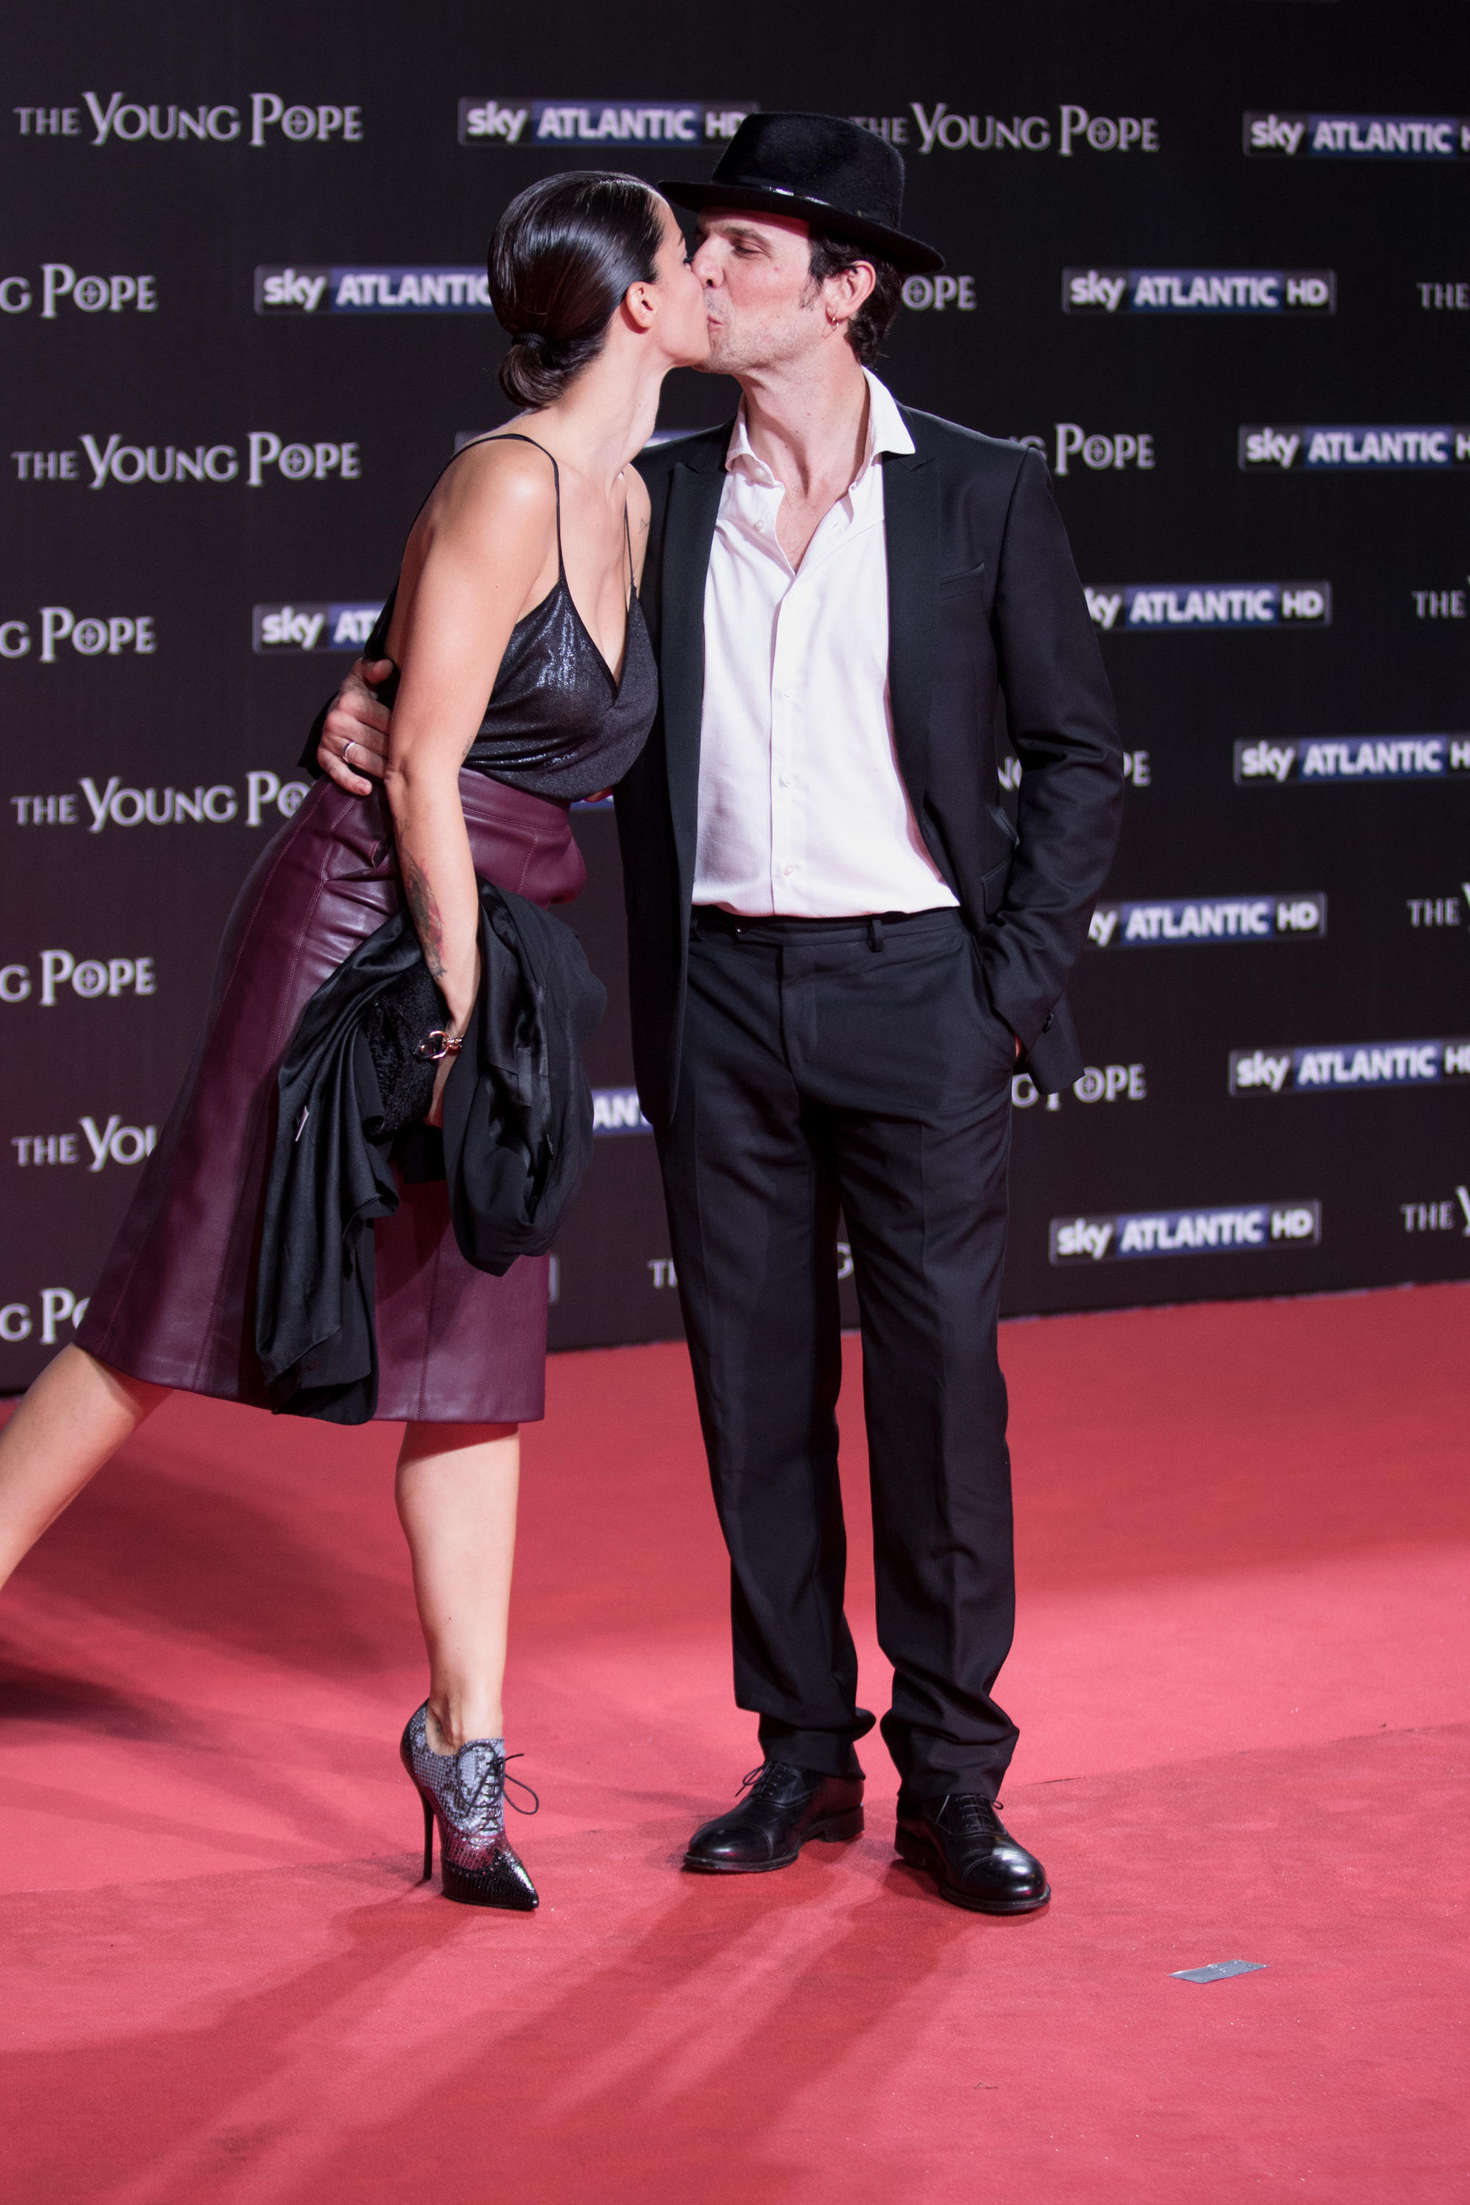 Andrea Delogu: The Young Pope Premiere